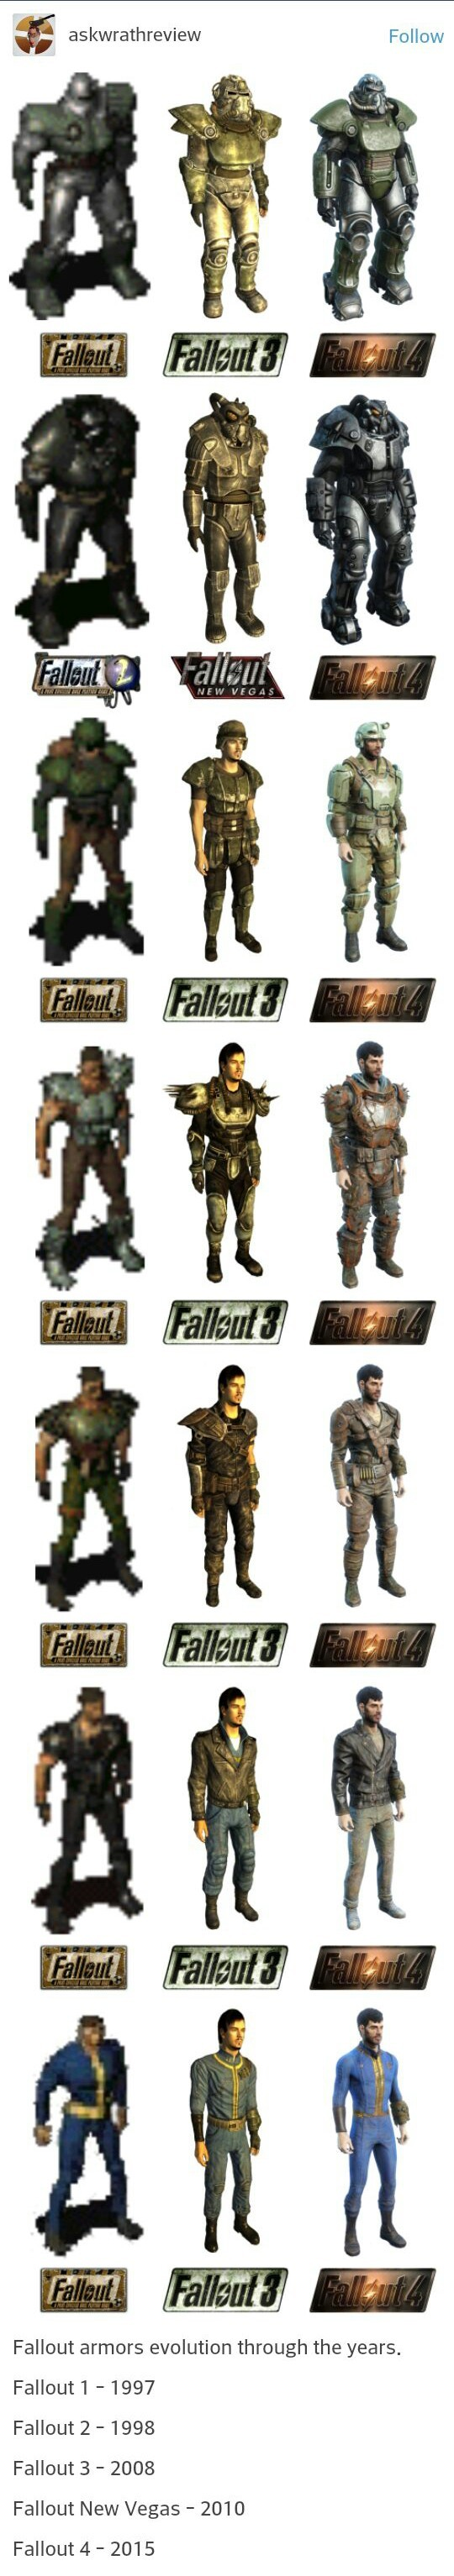 time never changes. . tlf Follow Fallout armors evolution through the years. Fallouts -1997 Fallout 2 -1998 Fallout 3 - 2008 Fallout New Vegas - 2010 Fallout at